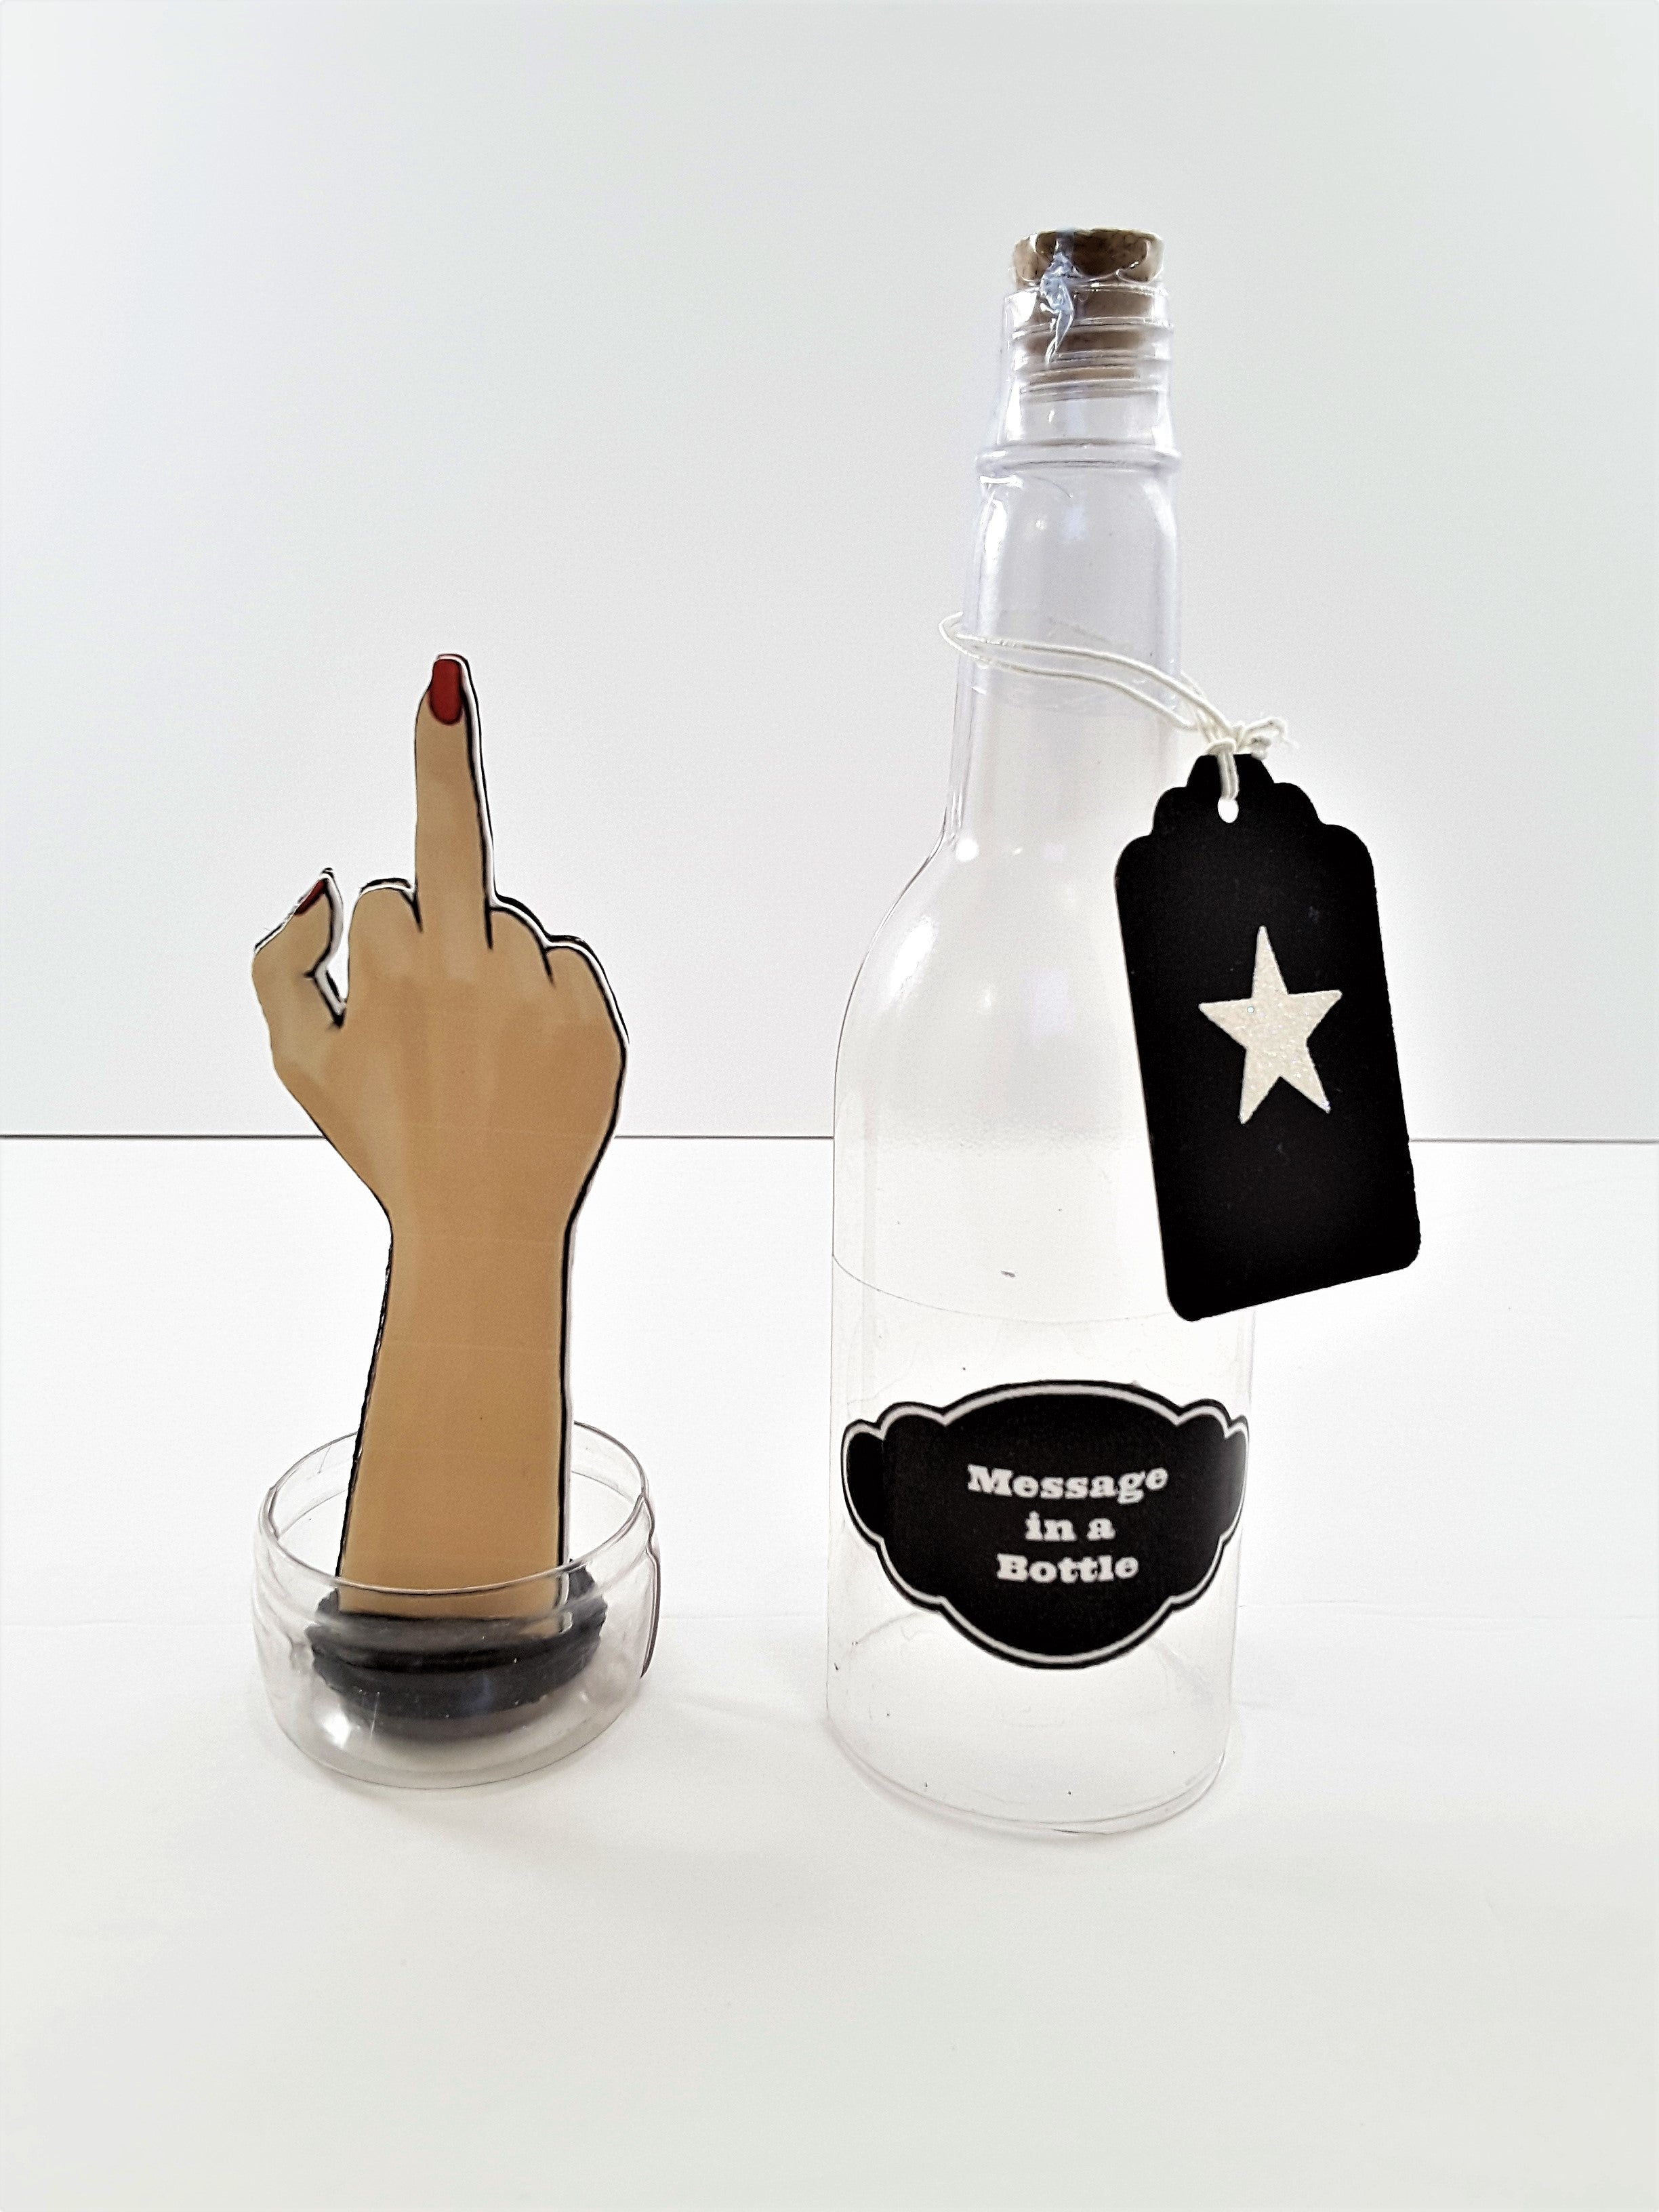 Middle Finger Salute Message in a Bottle - Female Hand - TheLastWordBish.com